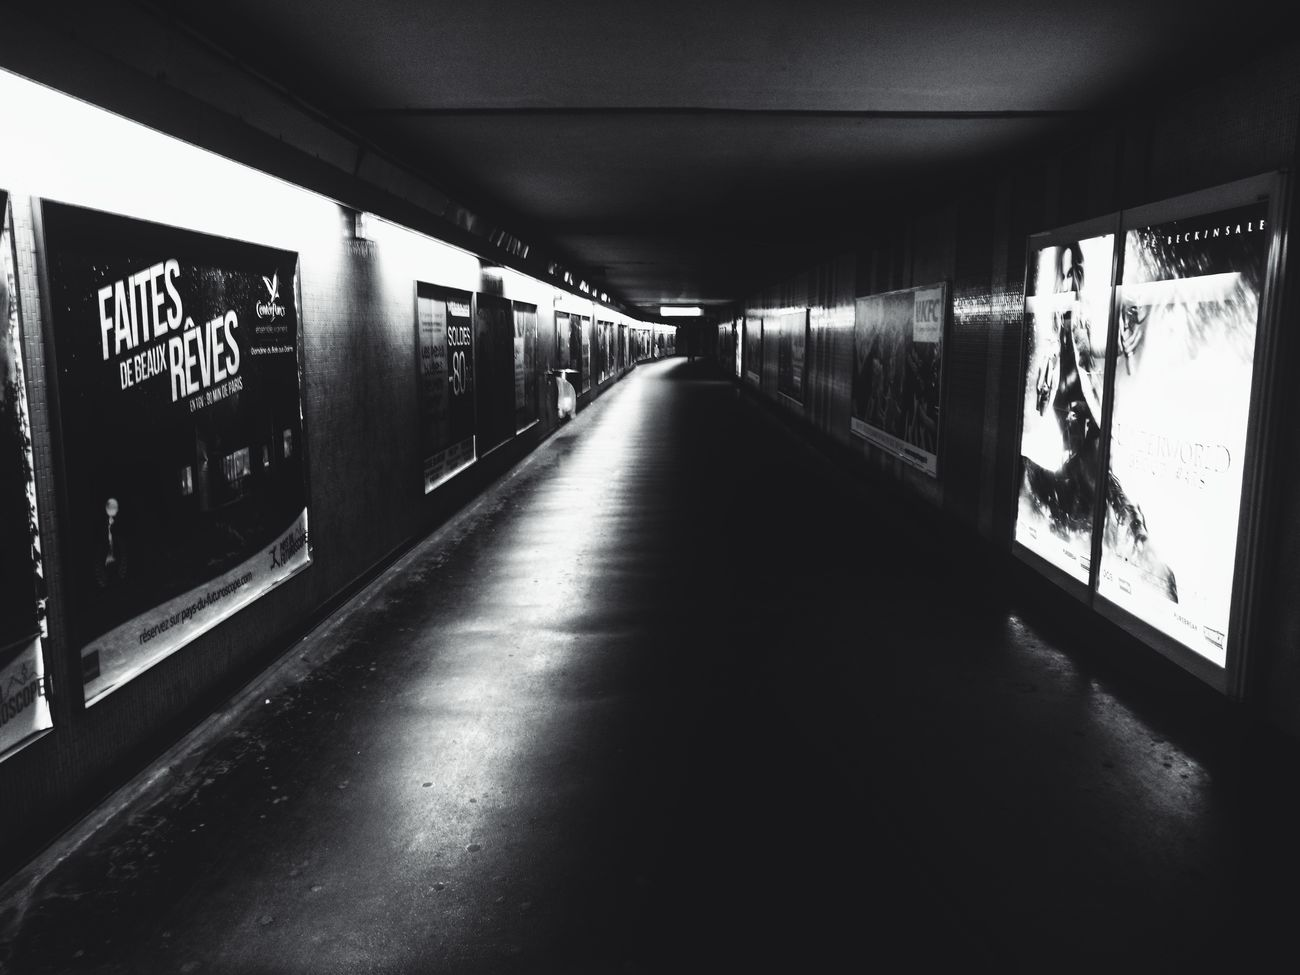 Artsofvisuals Inspirations EyeEm Gallery Arts No People Blackandwhitephoto Monochrome Photography MonochromePhotography Blackandwhite Photography Paris Monochrome Capture Black And White Monoart Lens Peoplecreatives Transportation Tunnel Tunnel Vision